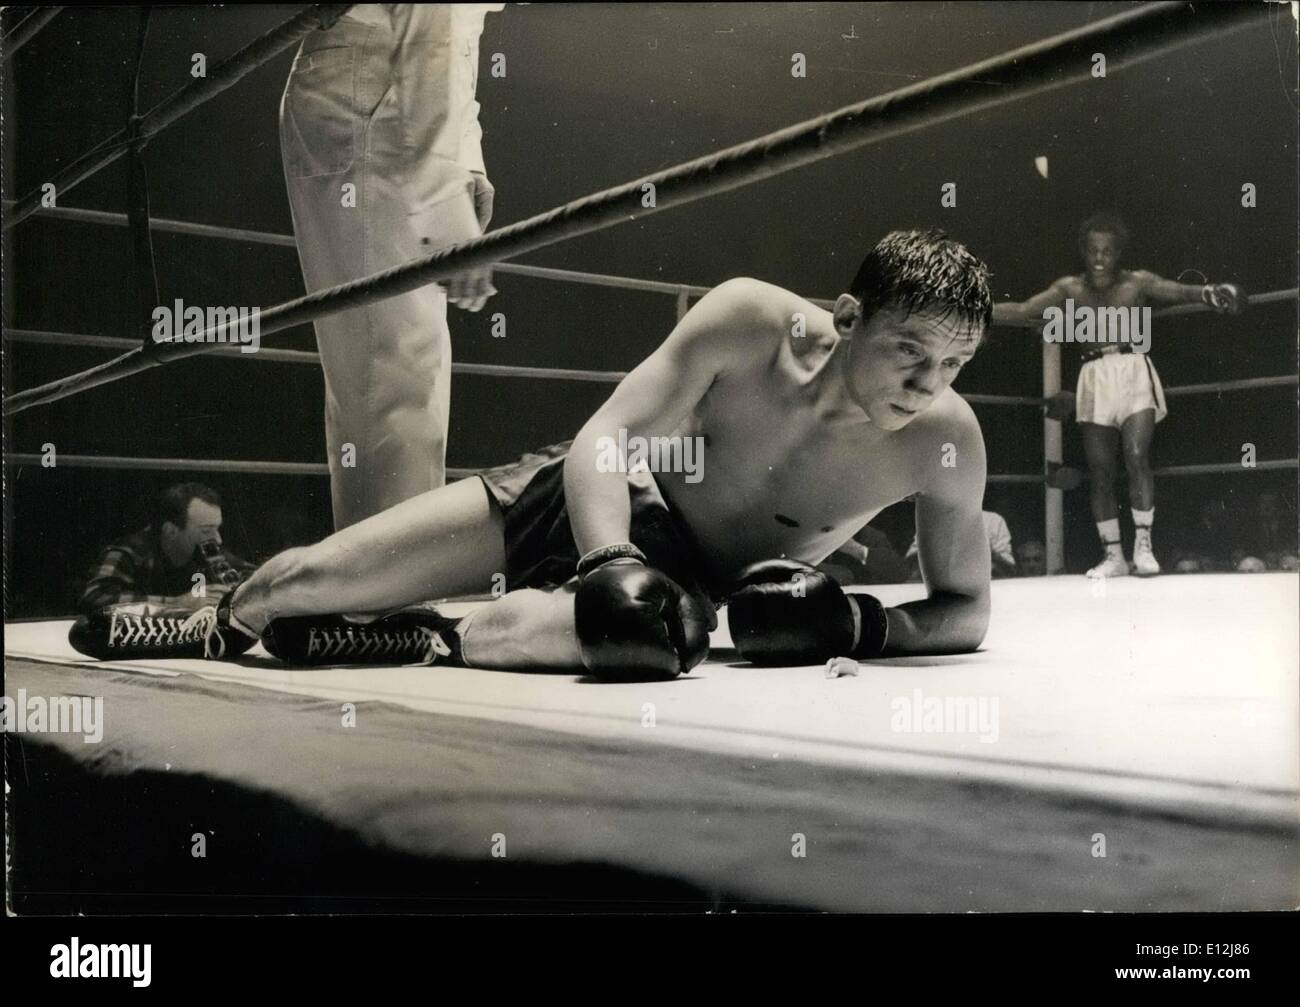 Feb. 24, 2012 - French boxing champion loses his teeth protector and his title; Yesterday night, at the Sports Palace in Paris, - Stock Image